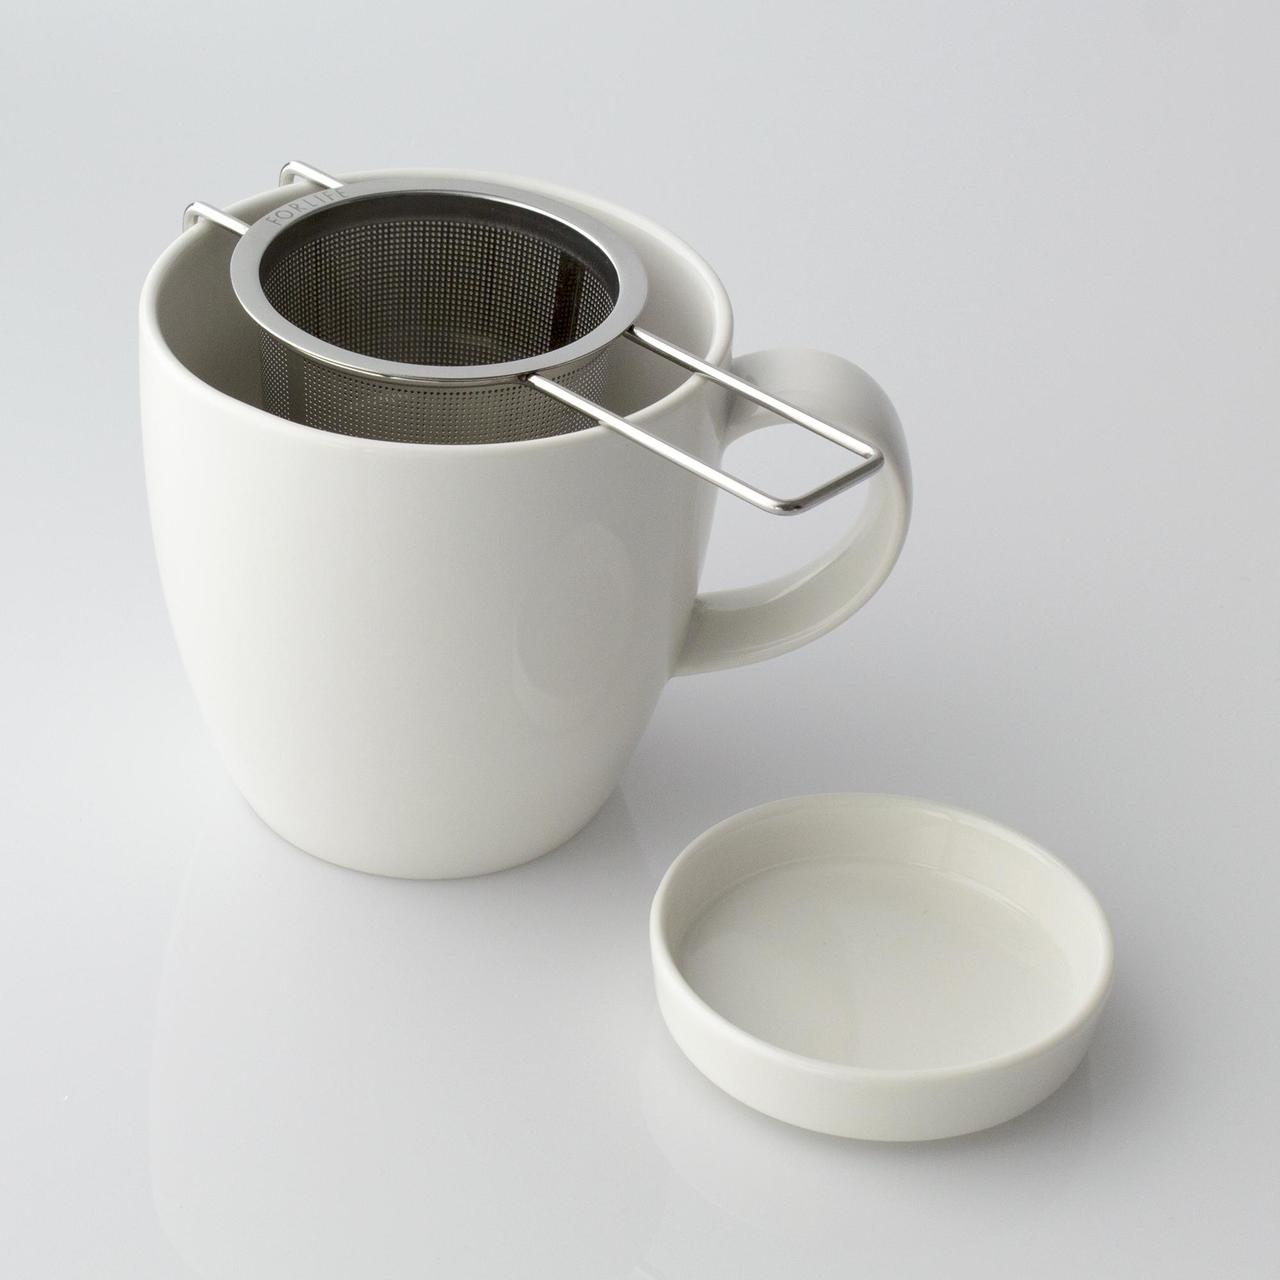 Loose Tea Infuser in Mug